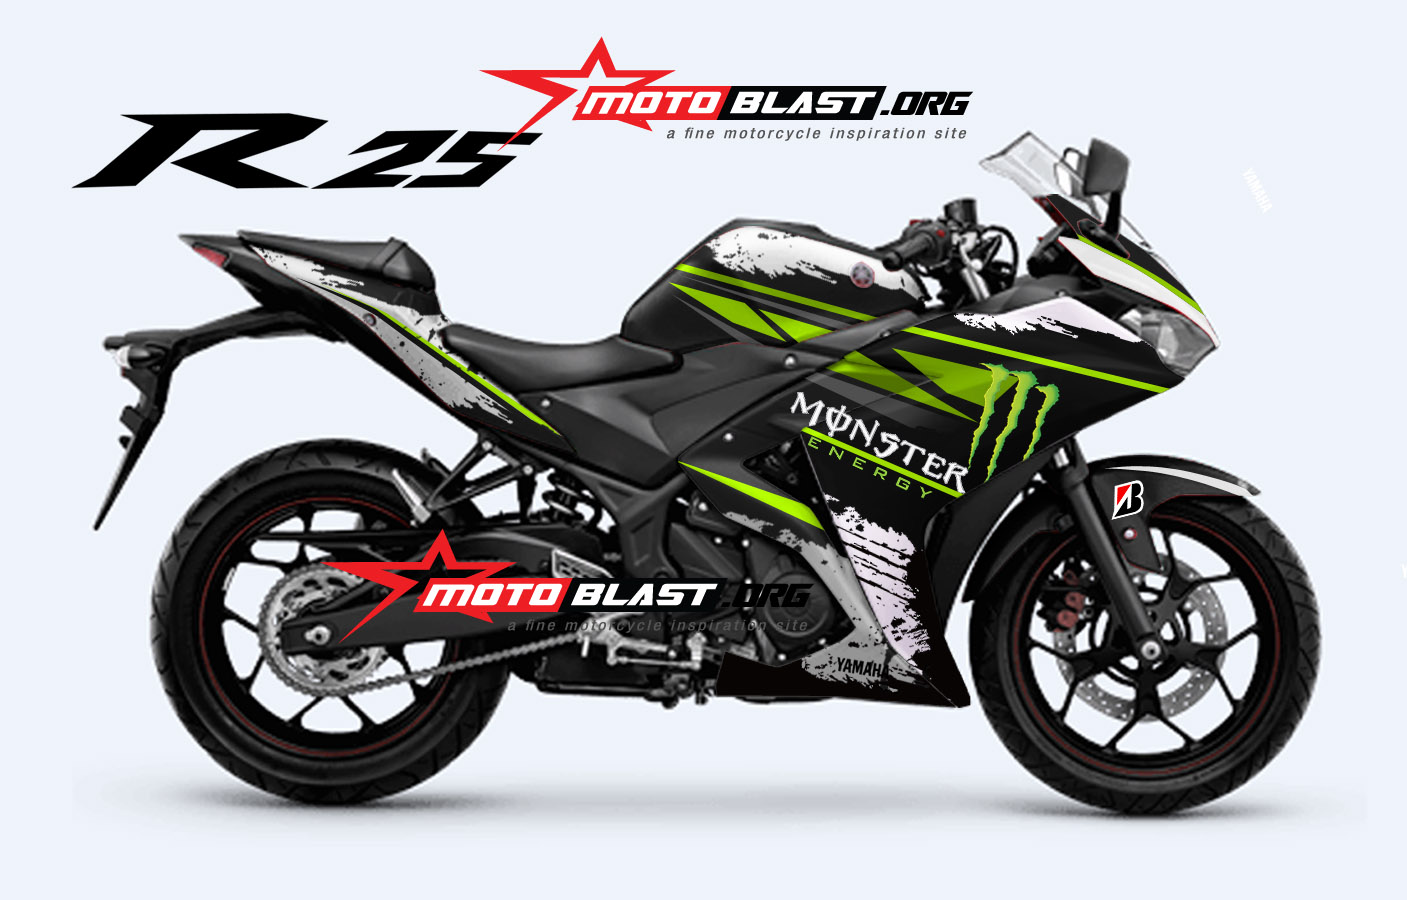 Modif Striping Yamaha R25 Monster energy  MOTOBLAST